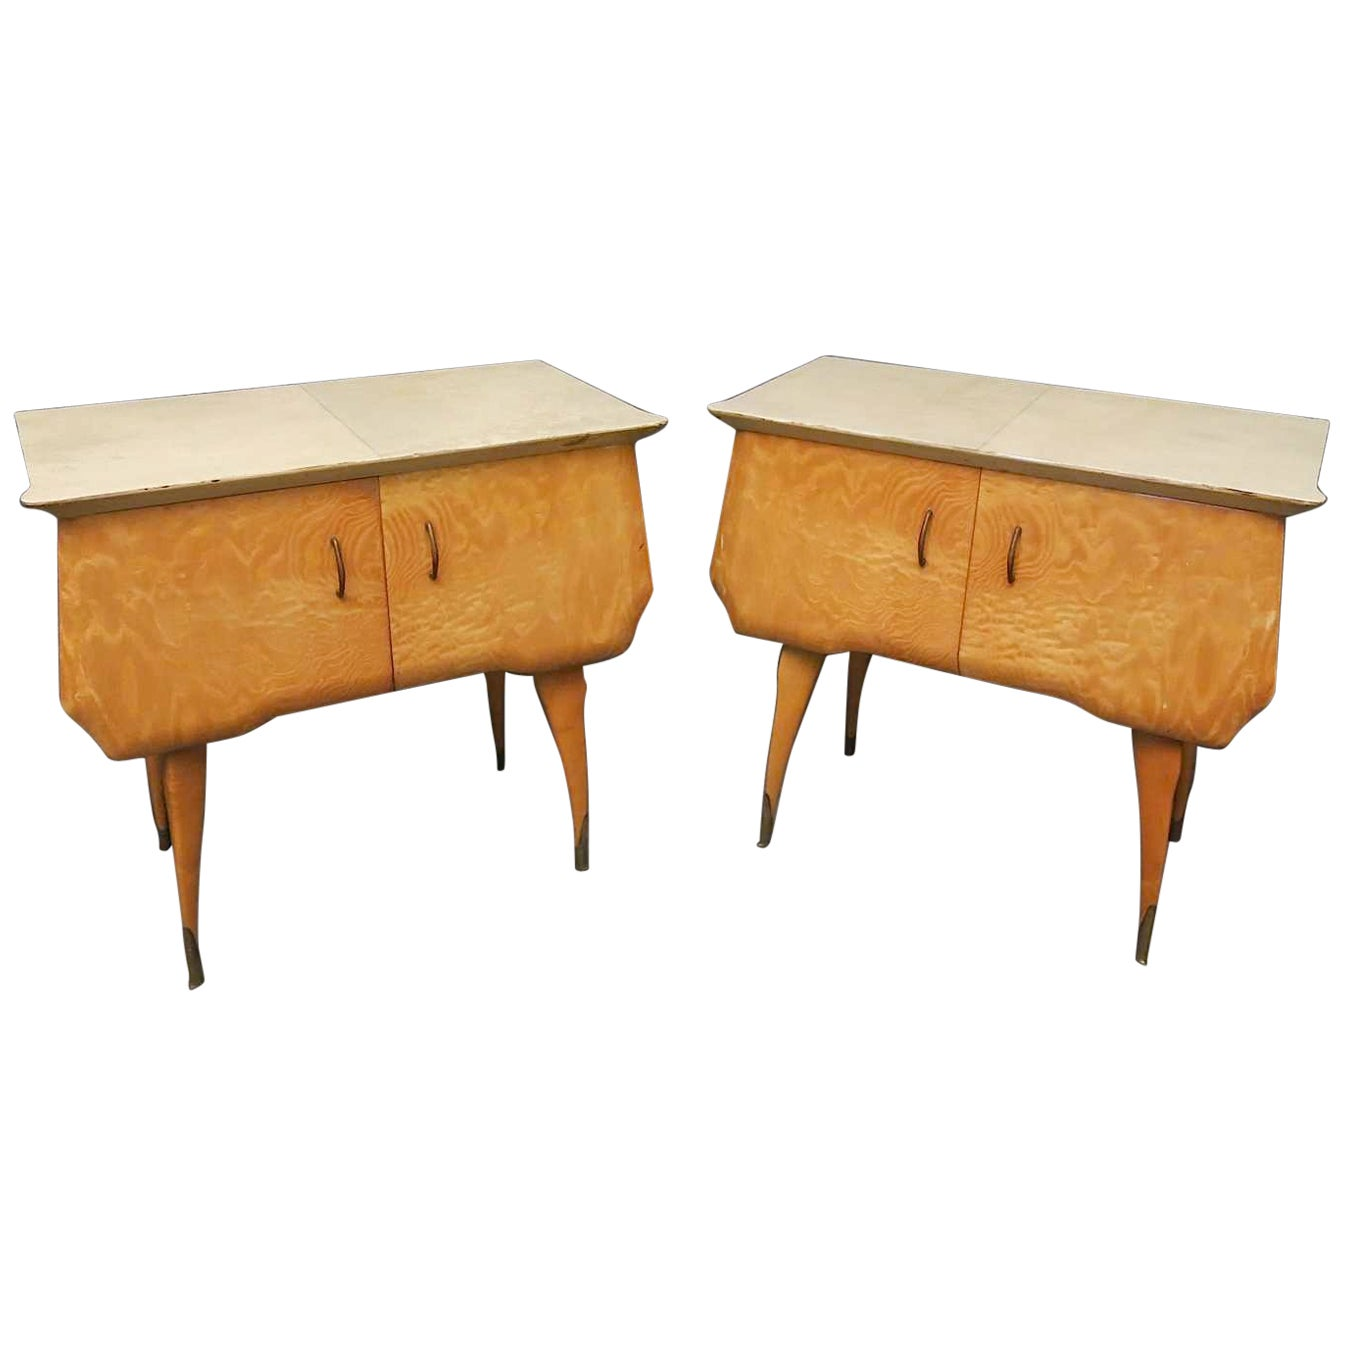 Pair of Midcentury Maple and Parchment Italian Bedside Tables, 1950